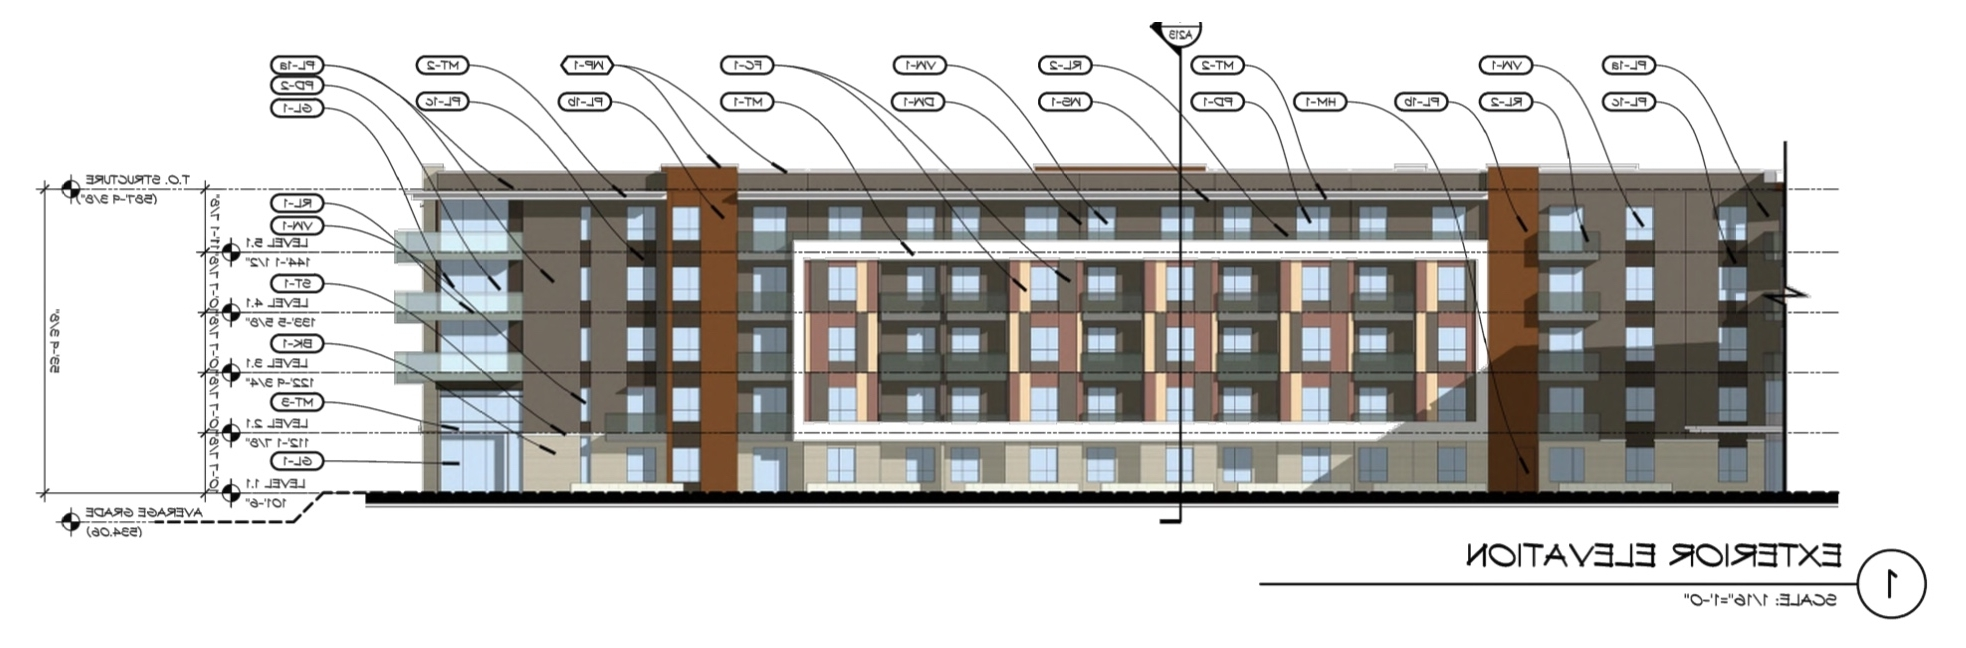 Apartment Development On The Way For A South Lamar Storage Texas Donut Apartment Design